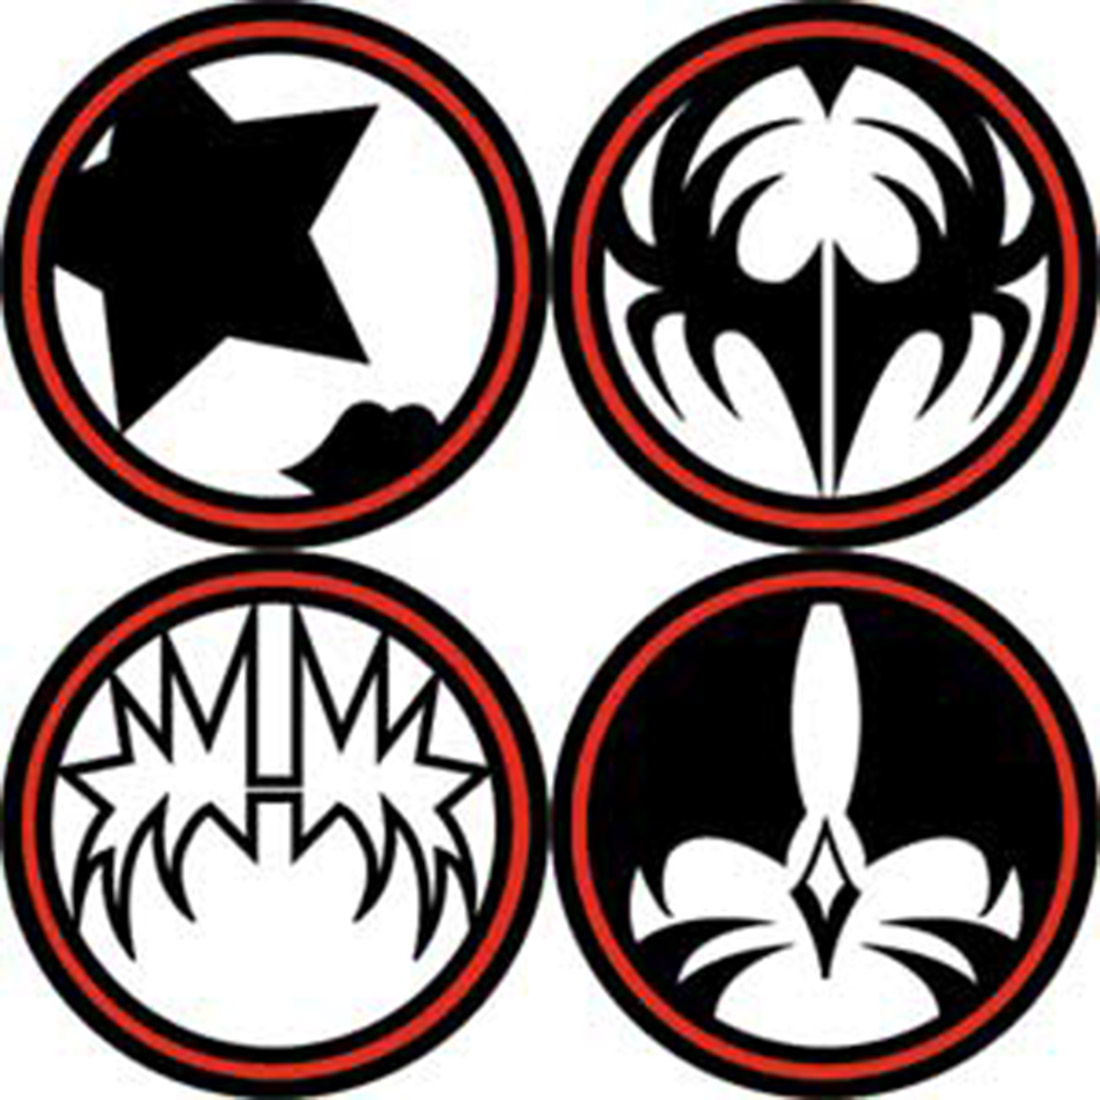 Kiss rock band clipart.